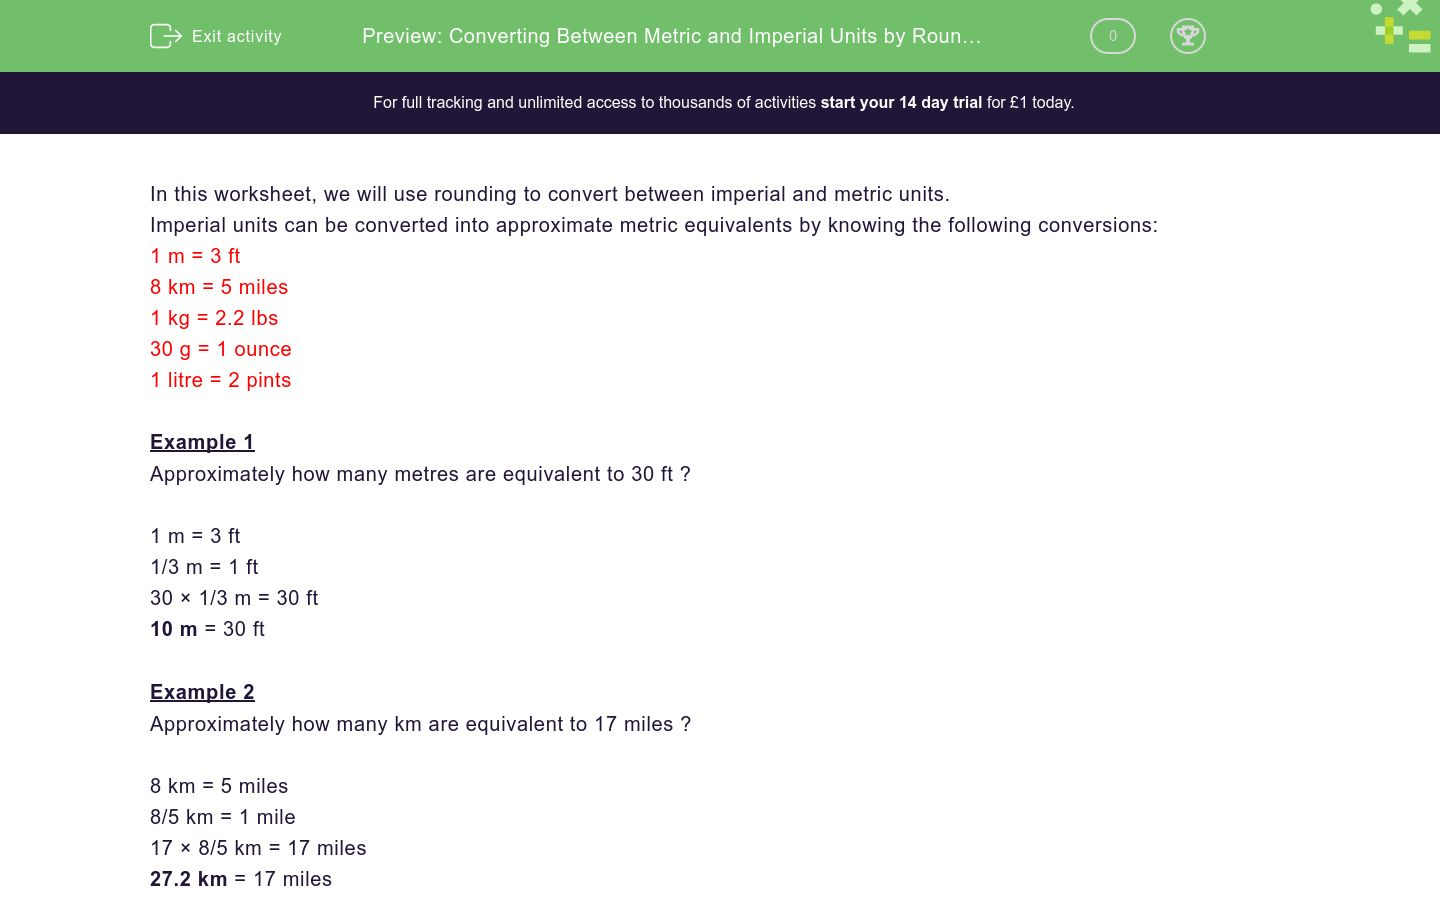 'Converting Between Metric and Imperial Units by Rounding' worksheet